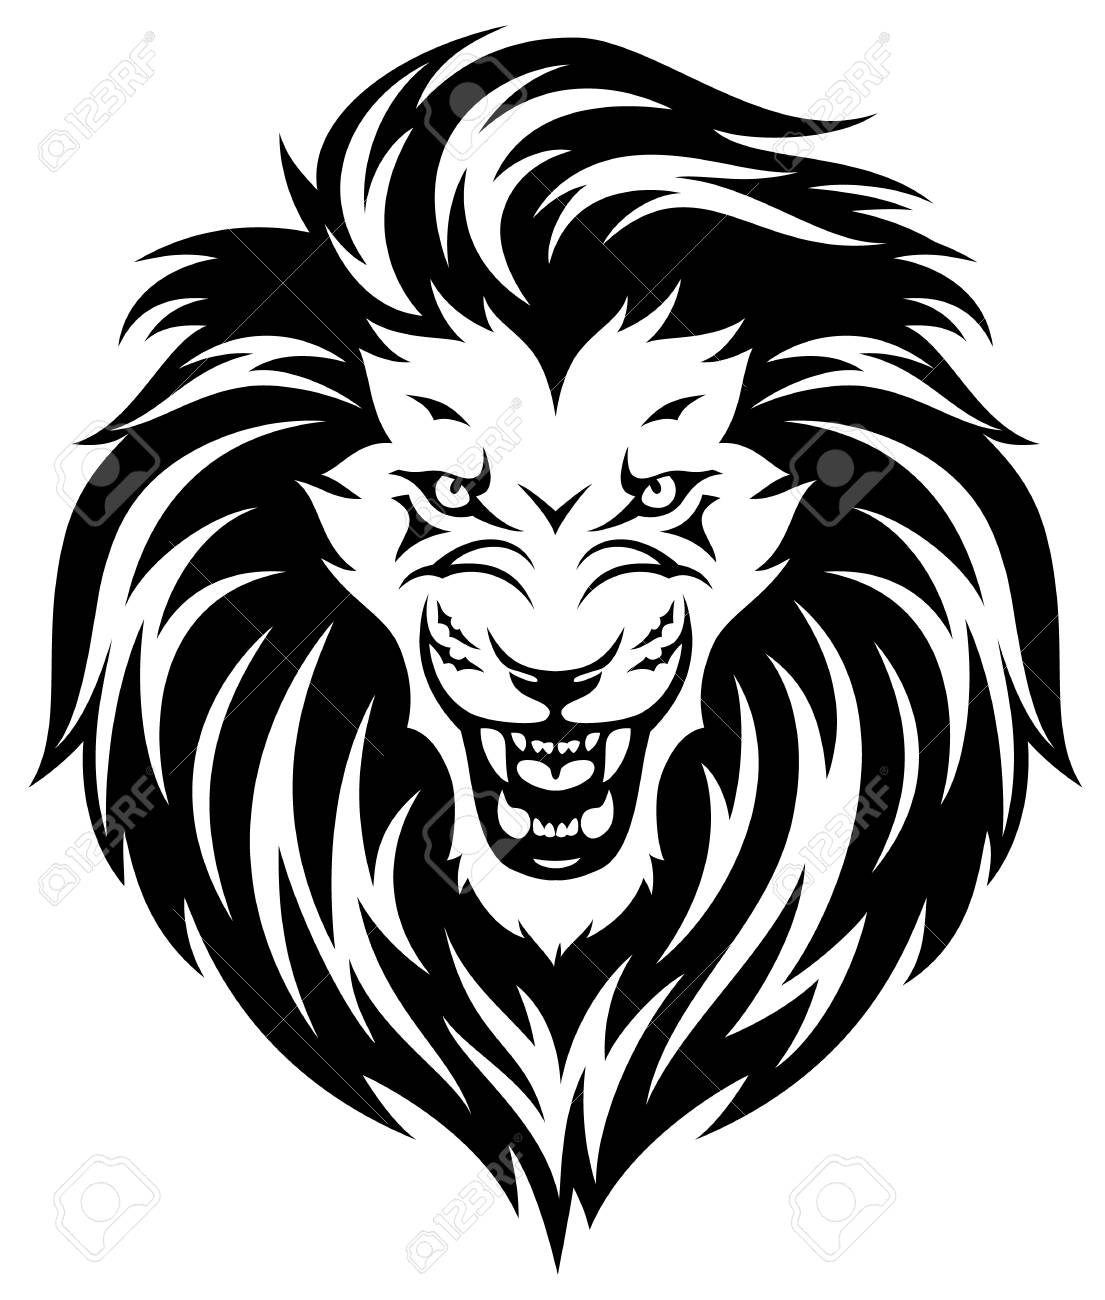 hight resolution of head of roaring lion black illustration isolated on white background stock vector 93411634